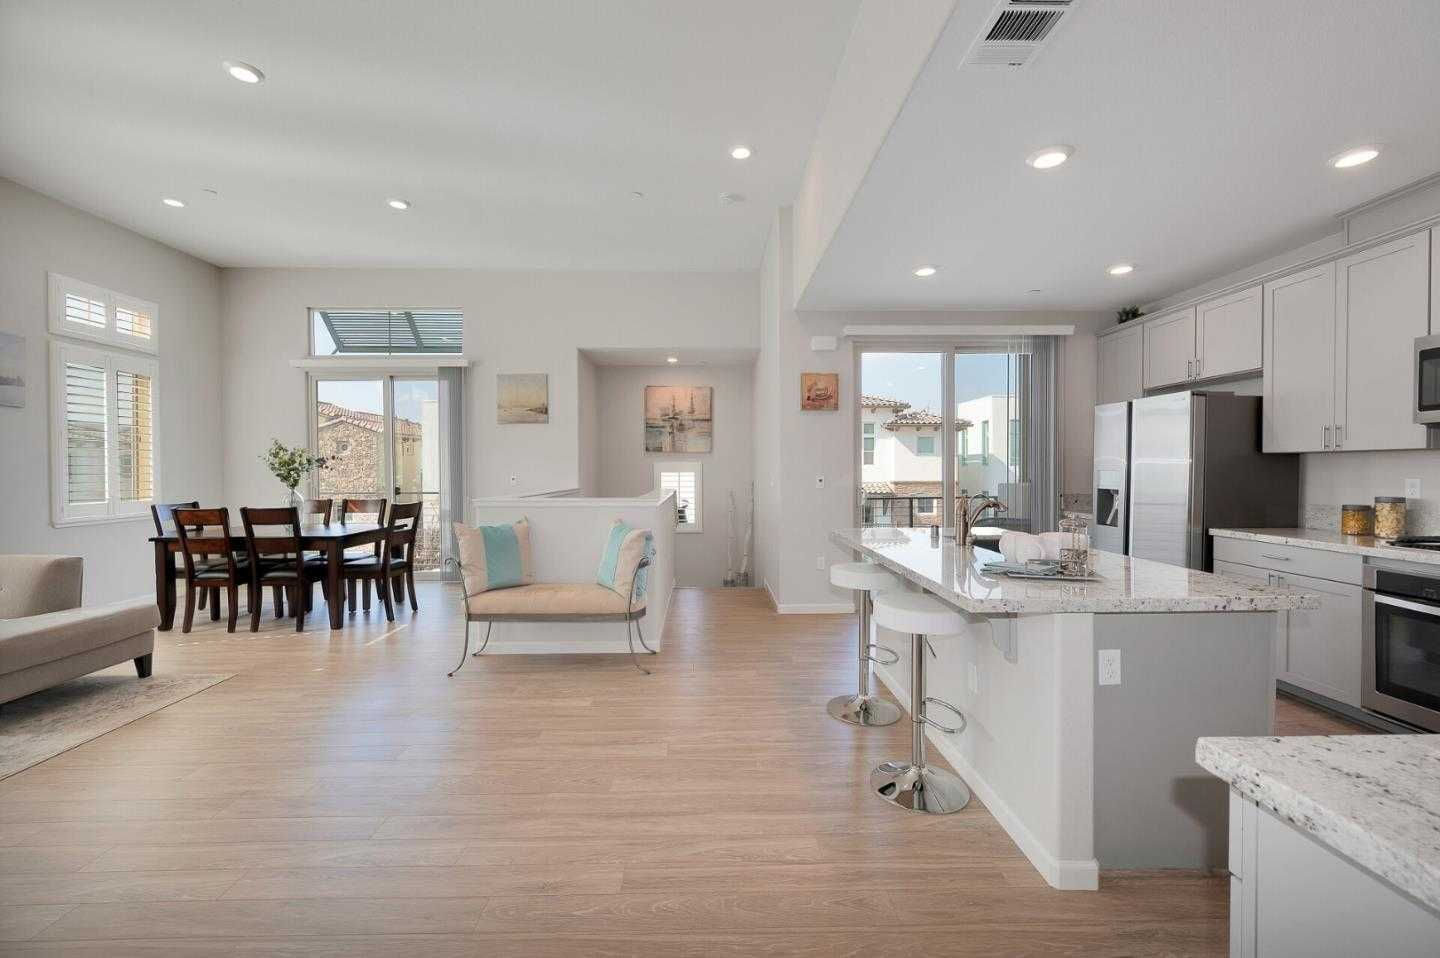 $849,000 - 2Br/2Ba -  for Sale in San Jose